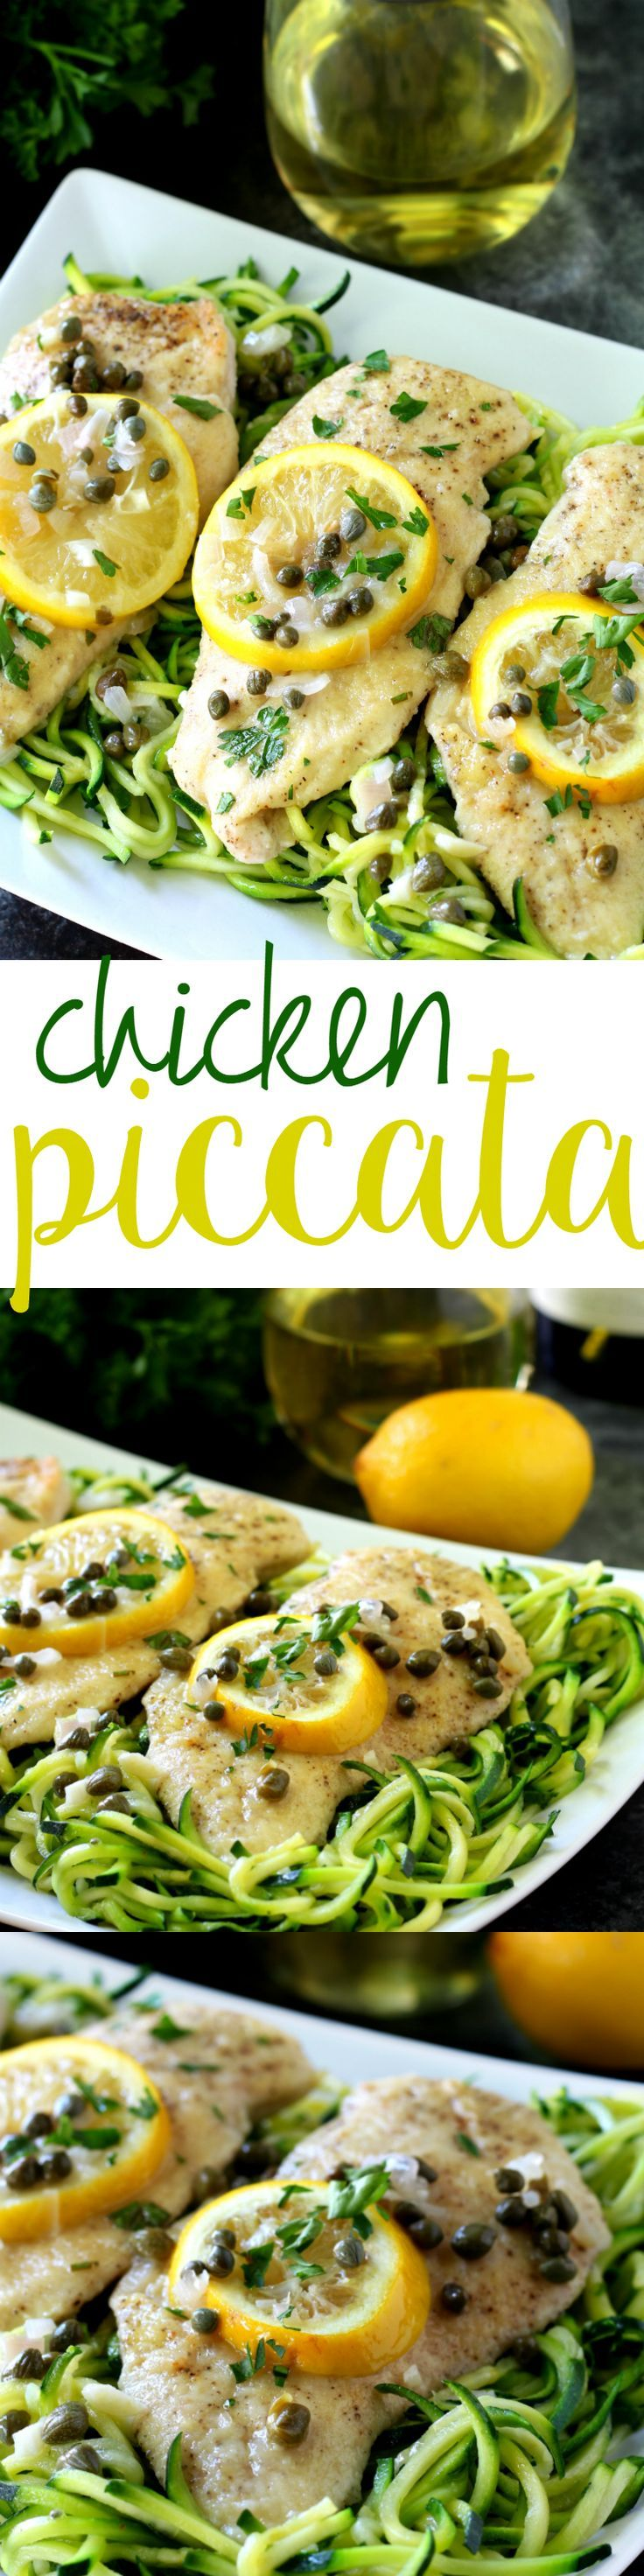 A lighter twist on the classic lemony chicken, this healthy chicken piccata recipe is full of zesty flavor and served over figure-friendly zucchini noodles.